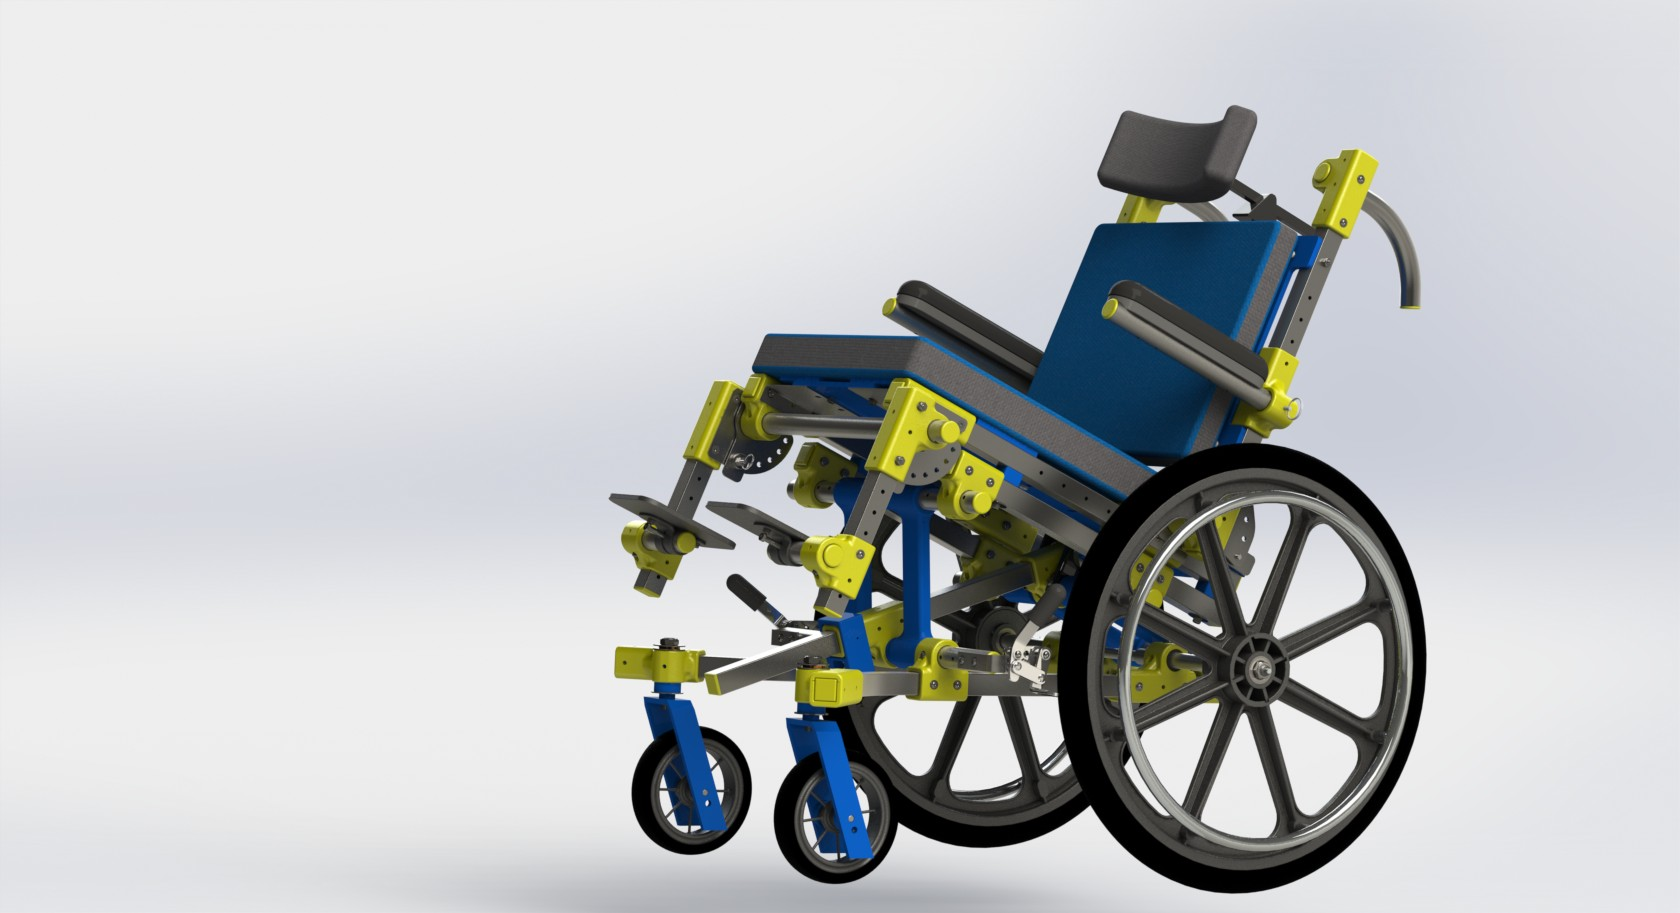 The PALM pediatric wheelchair with the seat frame tilted back.